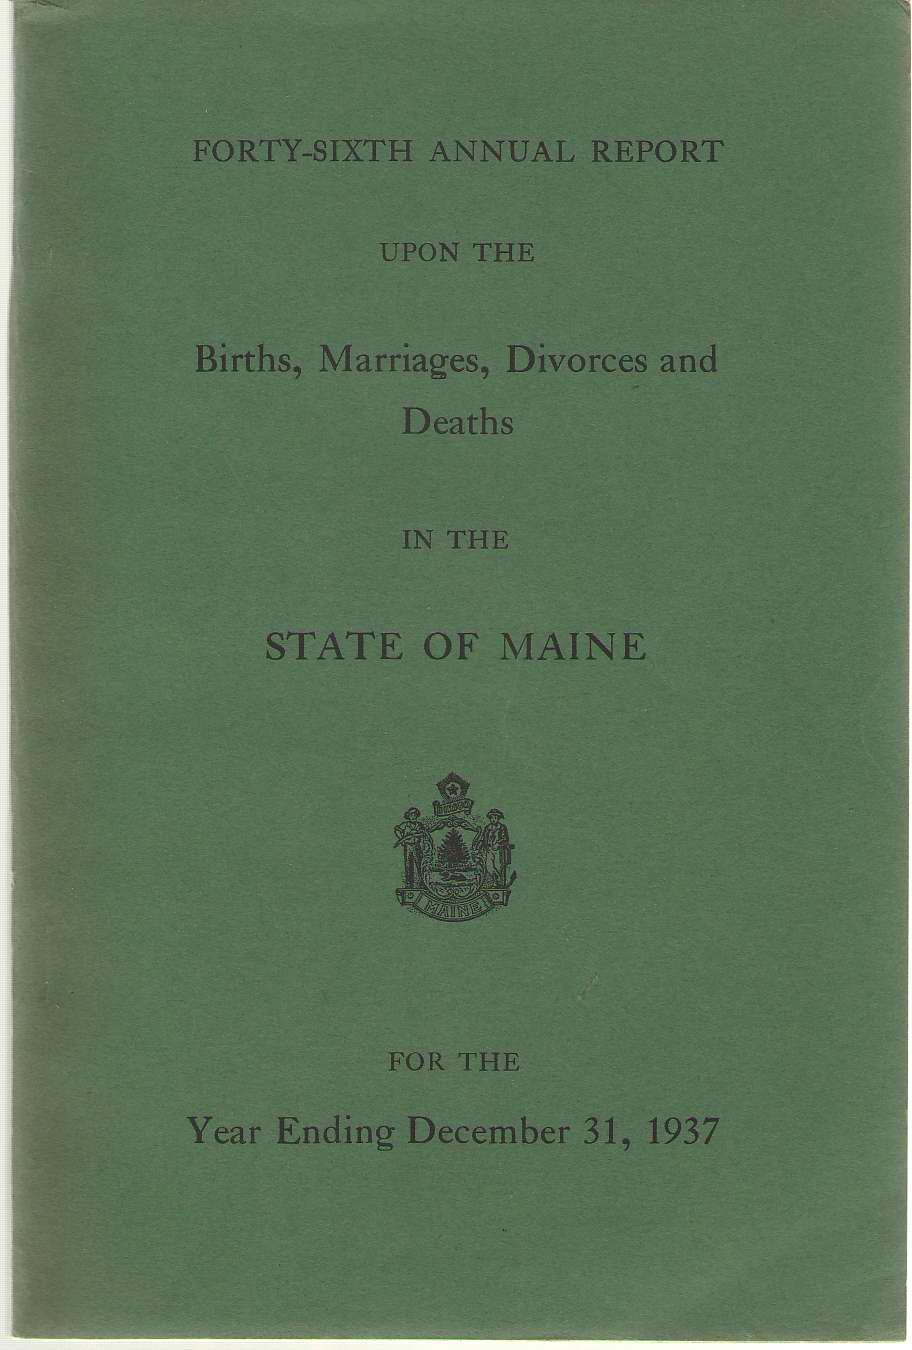 Image for Forty-sixth Annual Report On Births, Marriages, Divorces, And Deaths, In The State Of Maine For The Year Ending December 31, 1937